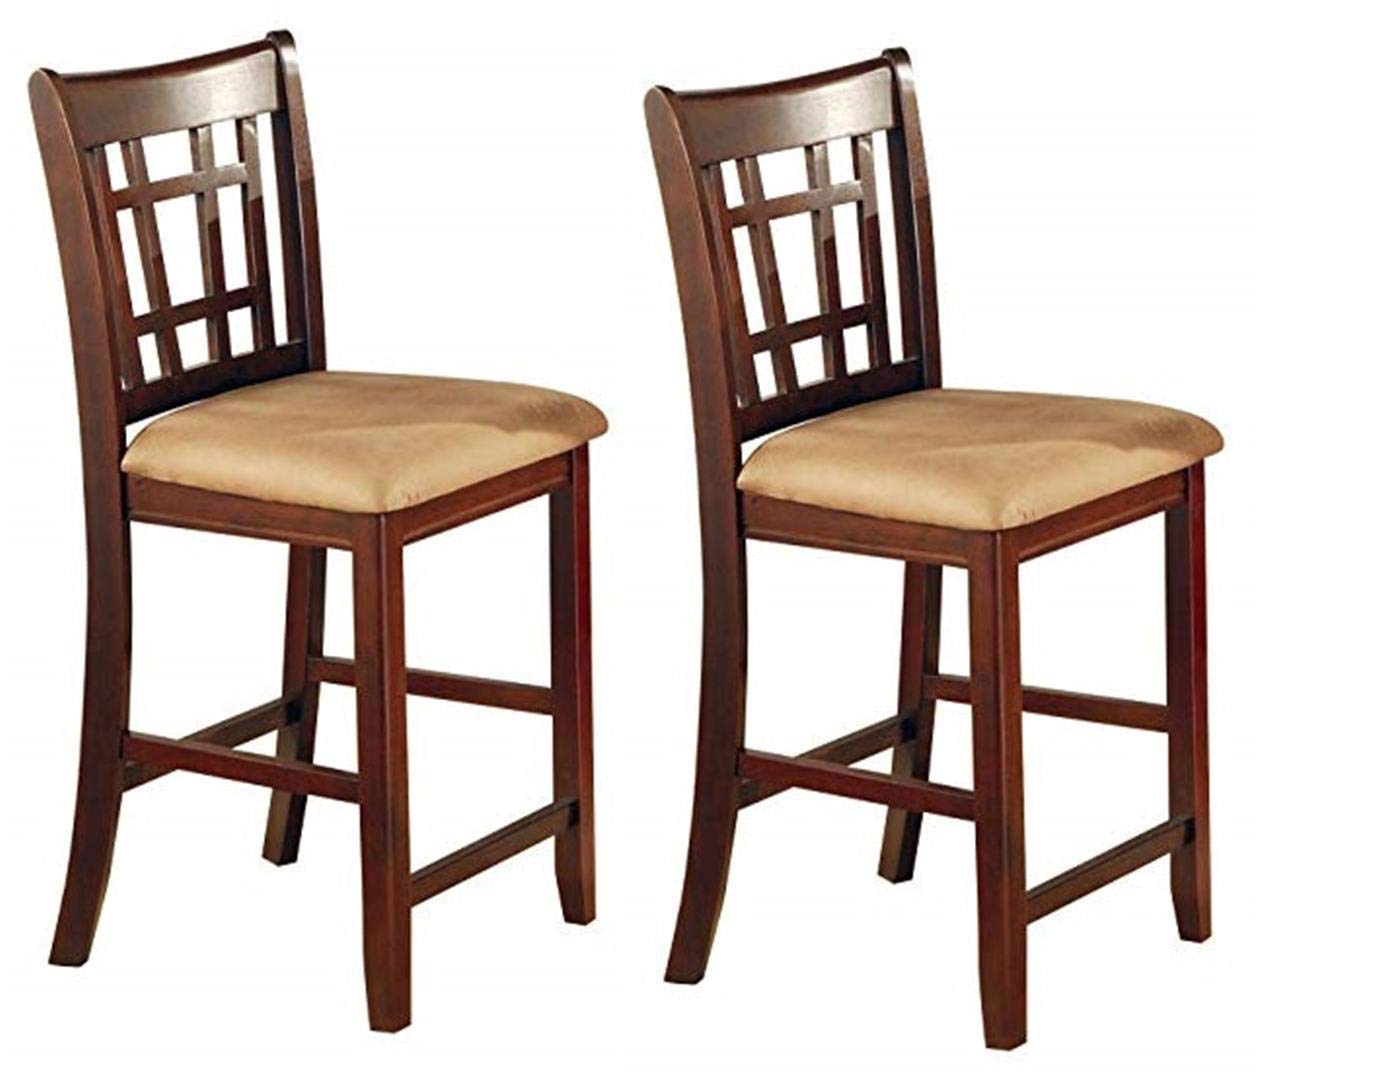 Lavon 24 Counter Stools Tan and Brown Set of 2